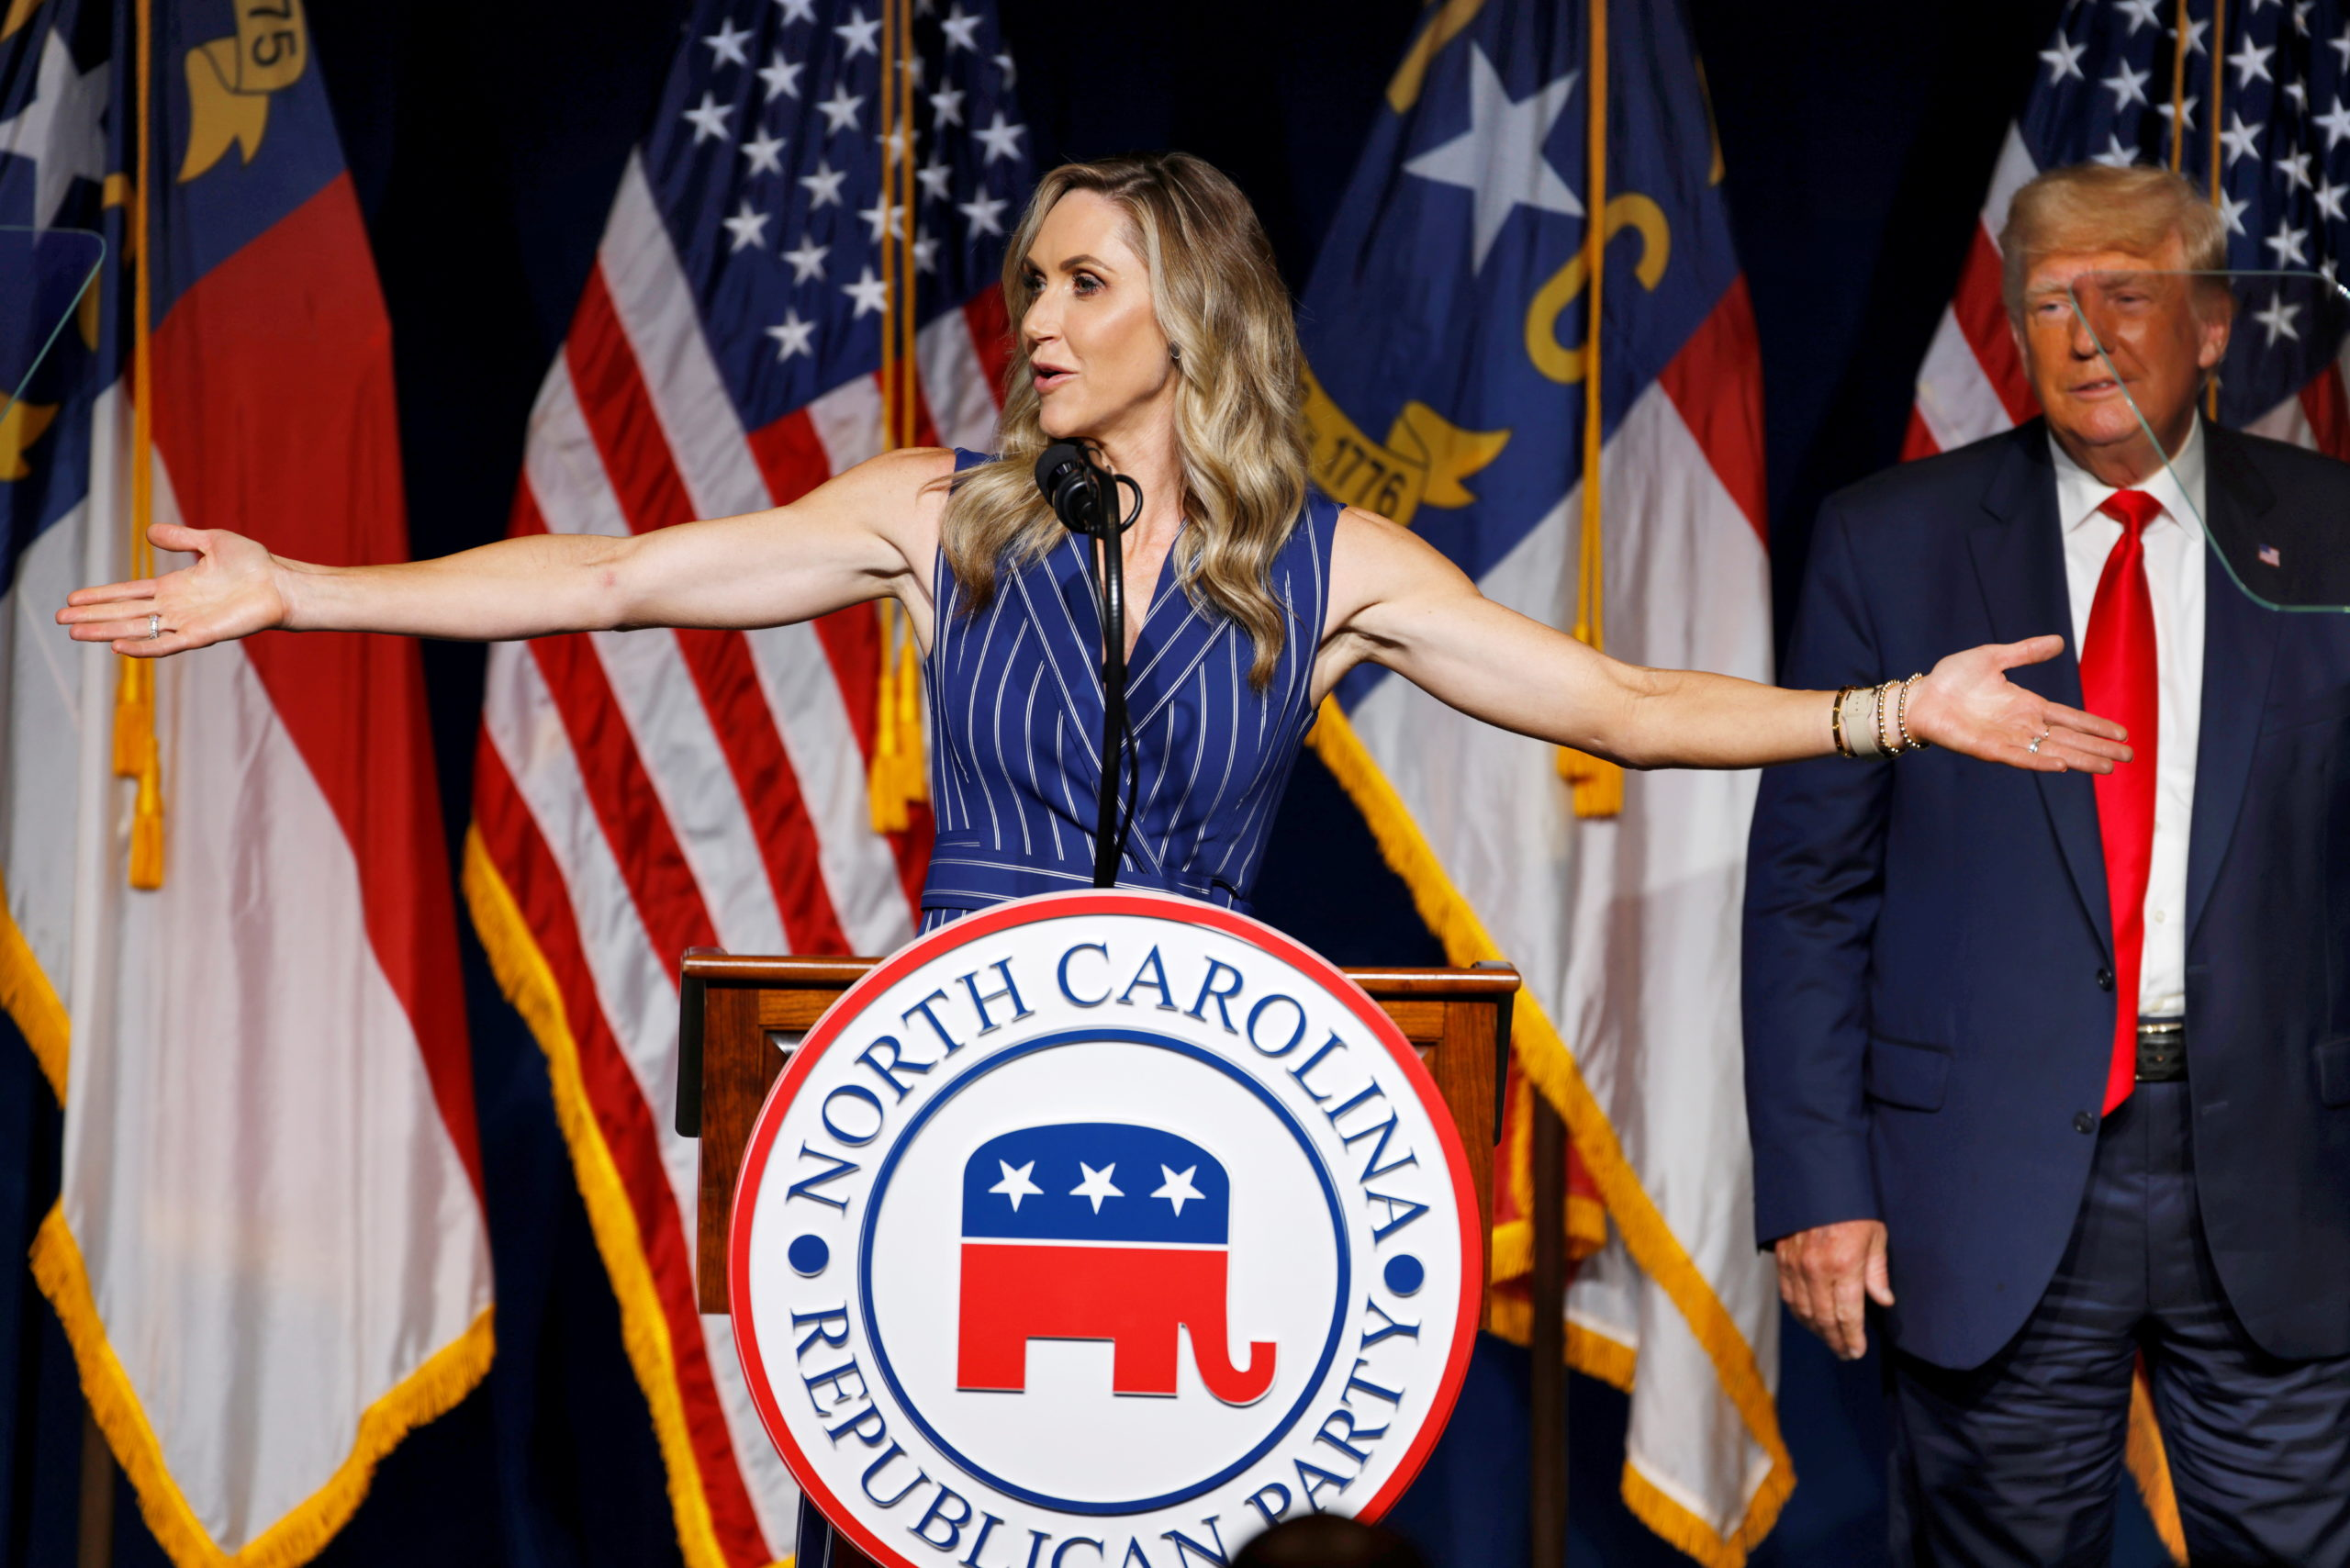 Lara Trump addresses the audience as her father-in-law, former U.S. President Donald Trump, looks on at the North Carolina GOP convention dinner in Greenville, North Carolina, U.S. June 5, 2021. [REUTERS/Jonathan Drake]